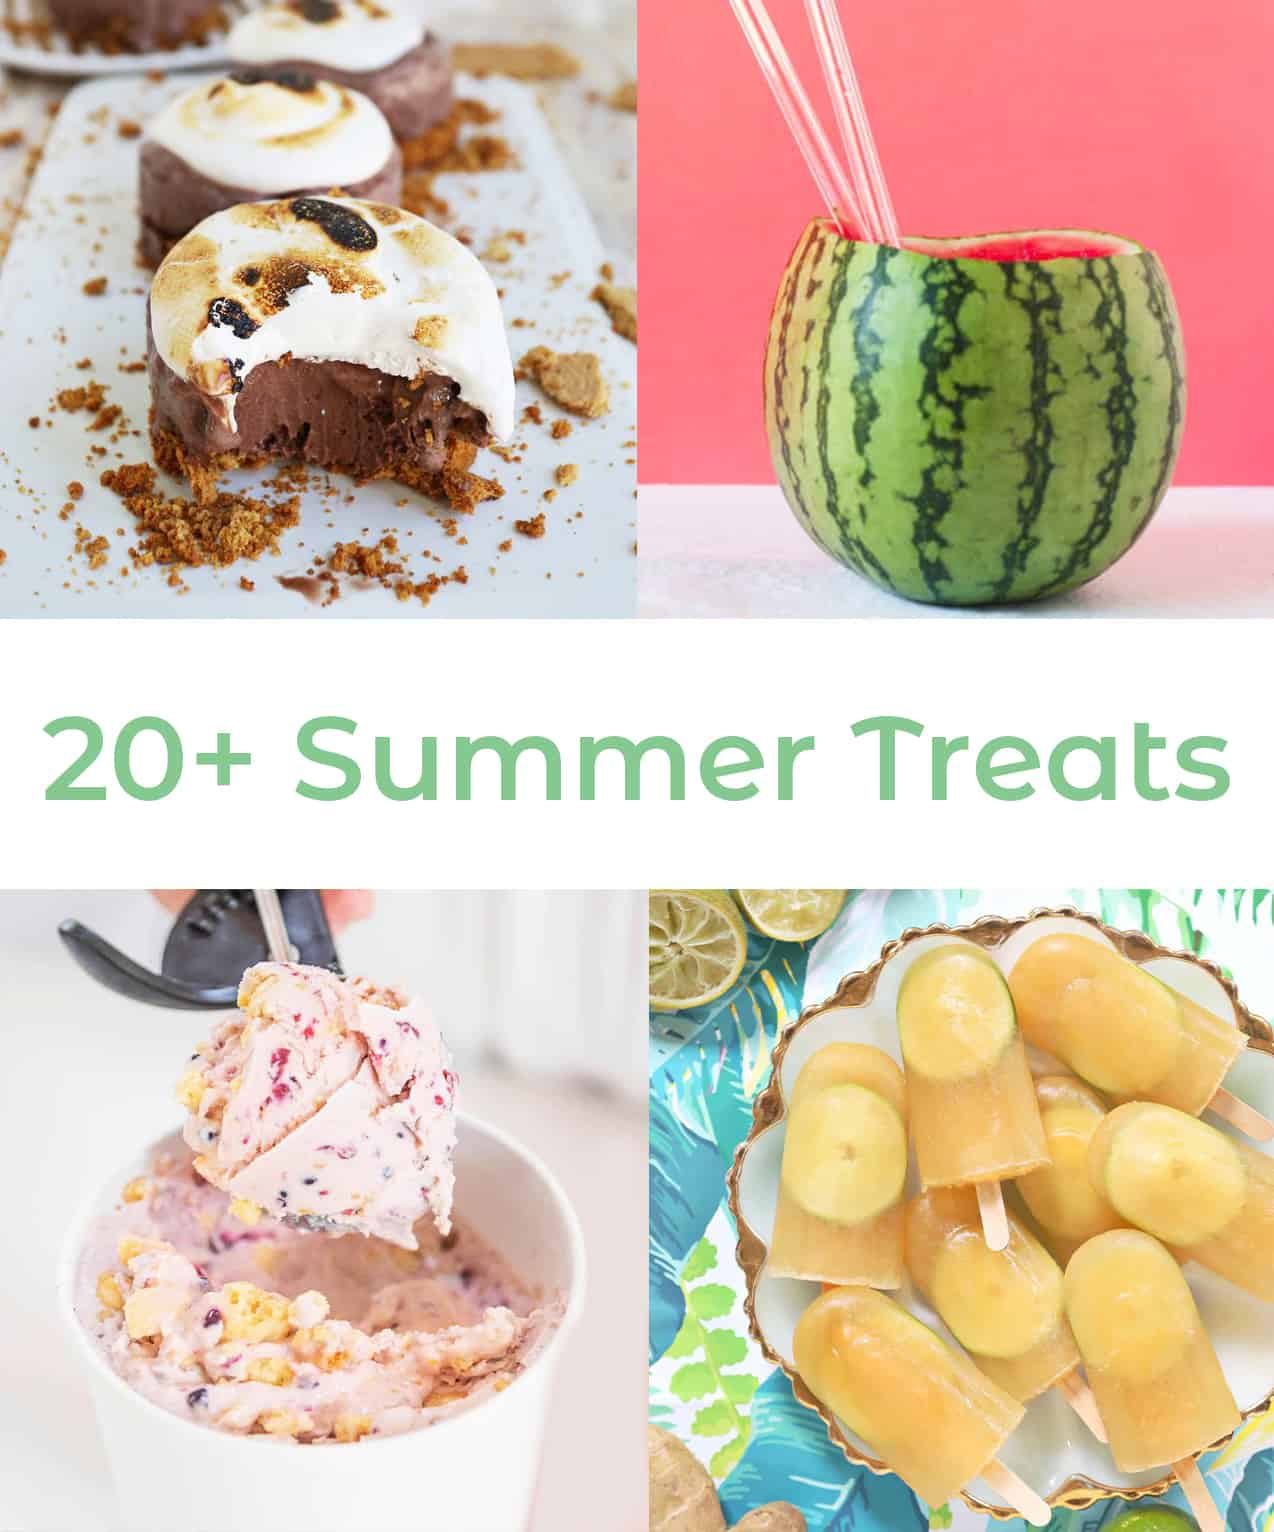 Our Favorite Summer Treats